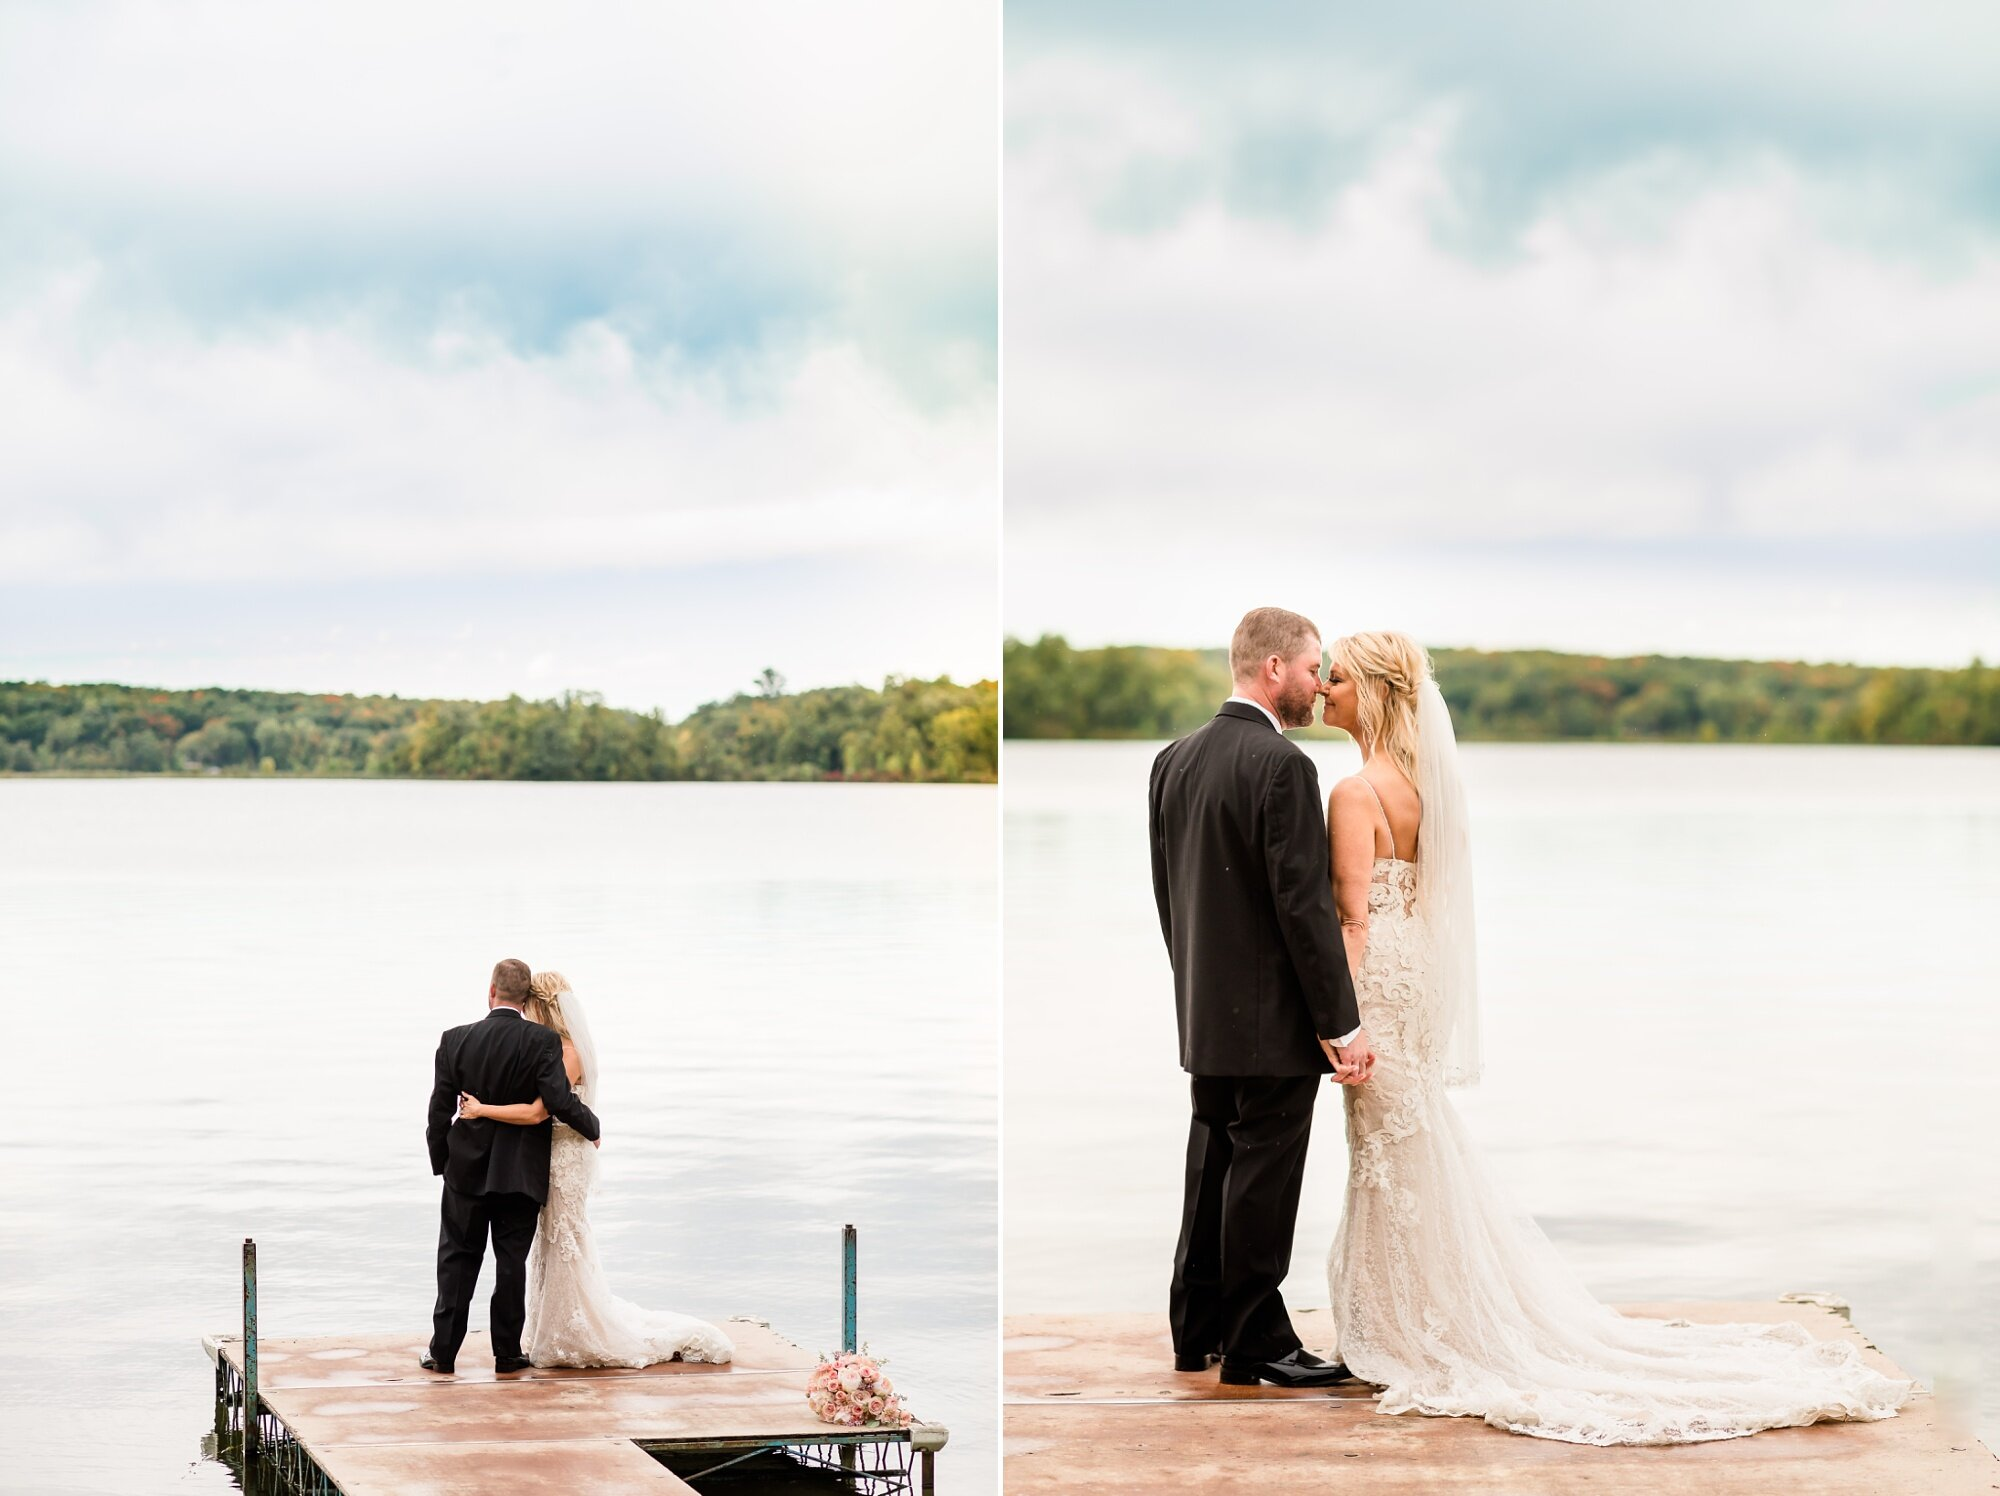 Amber Langerud Photography_Eagle Lake Rustic Styled Outdoor Wedding in Minnesota_6859.jpg